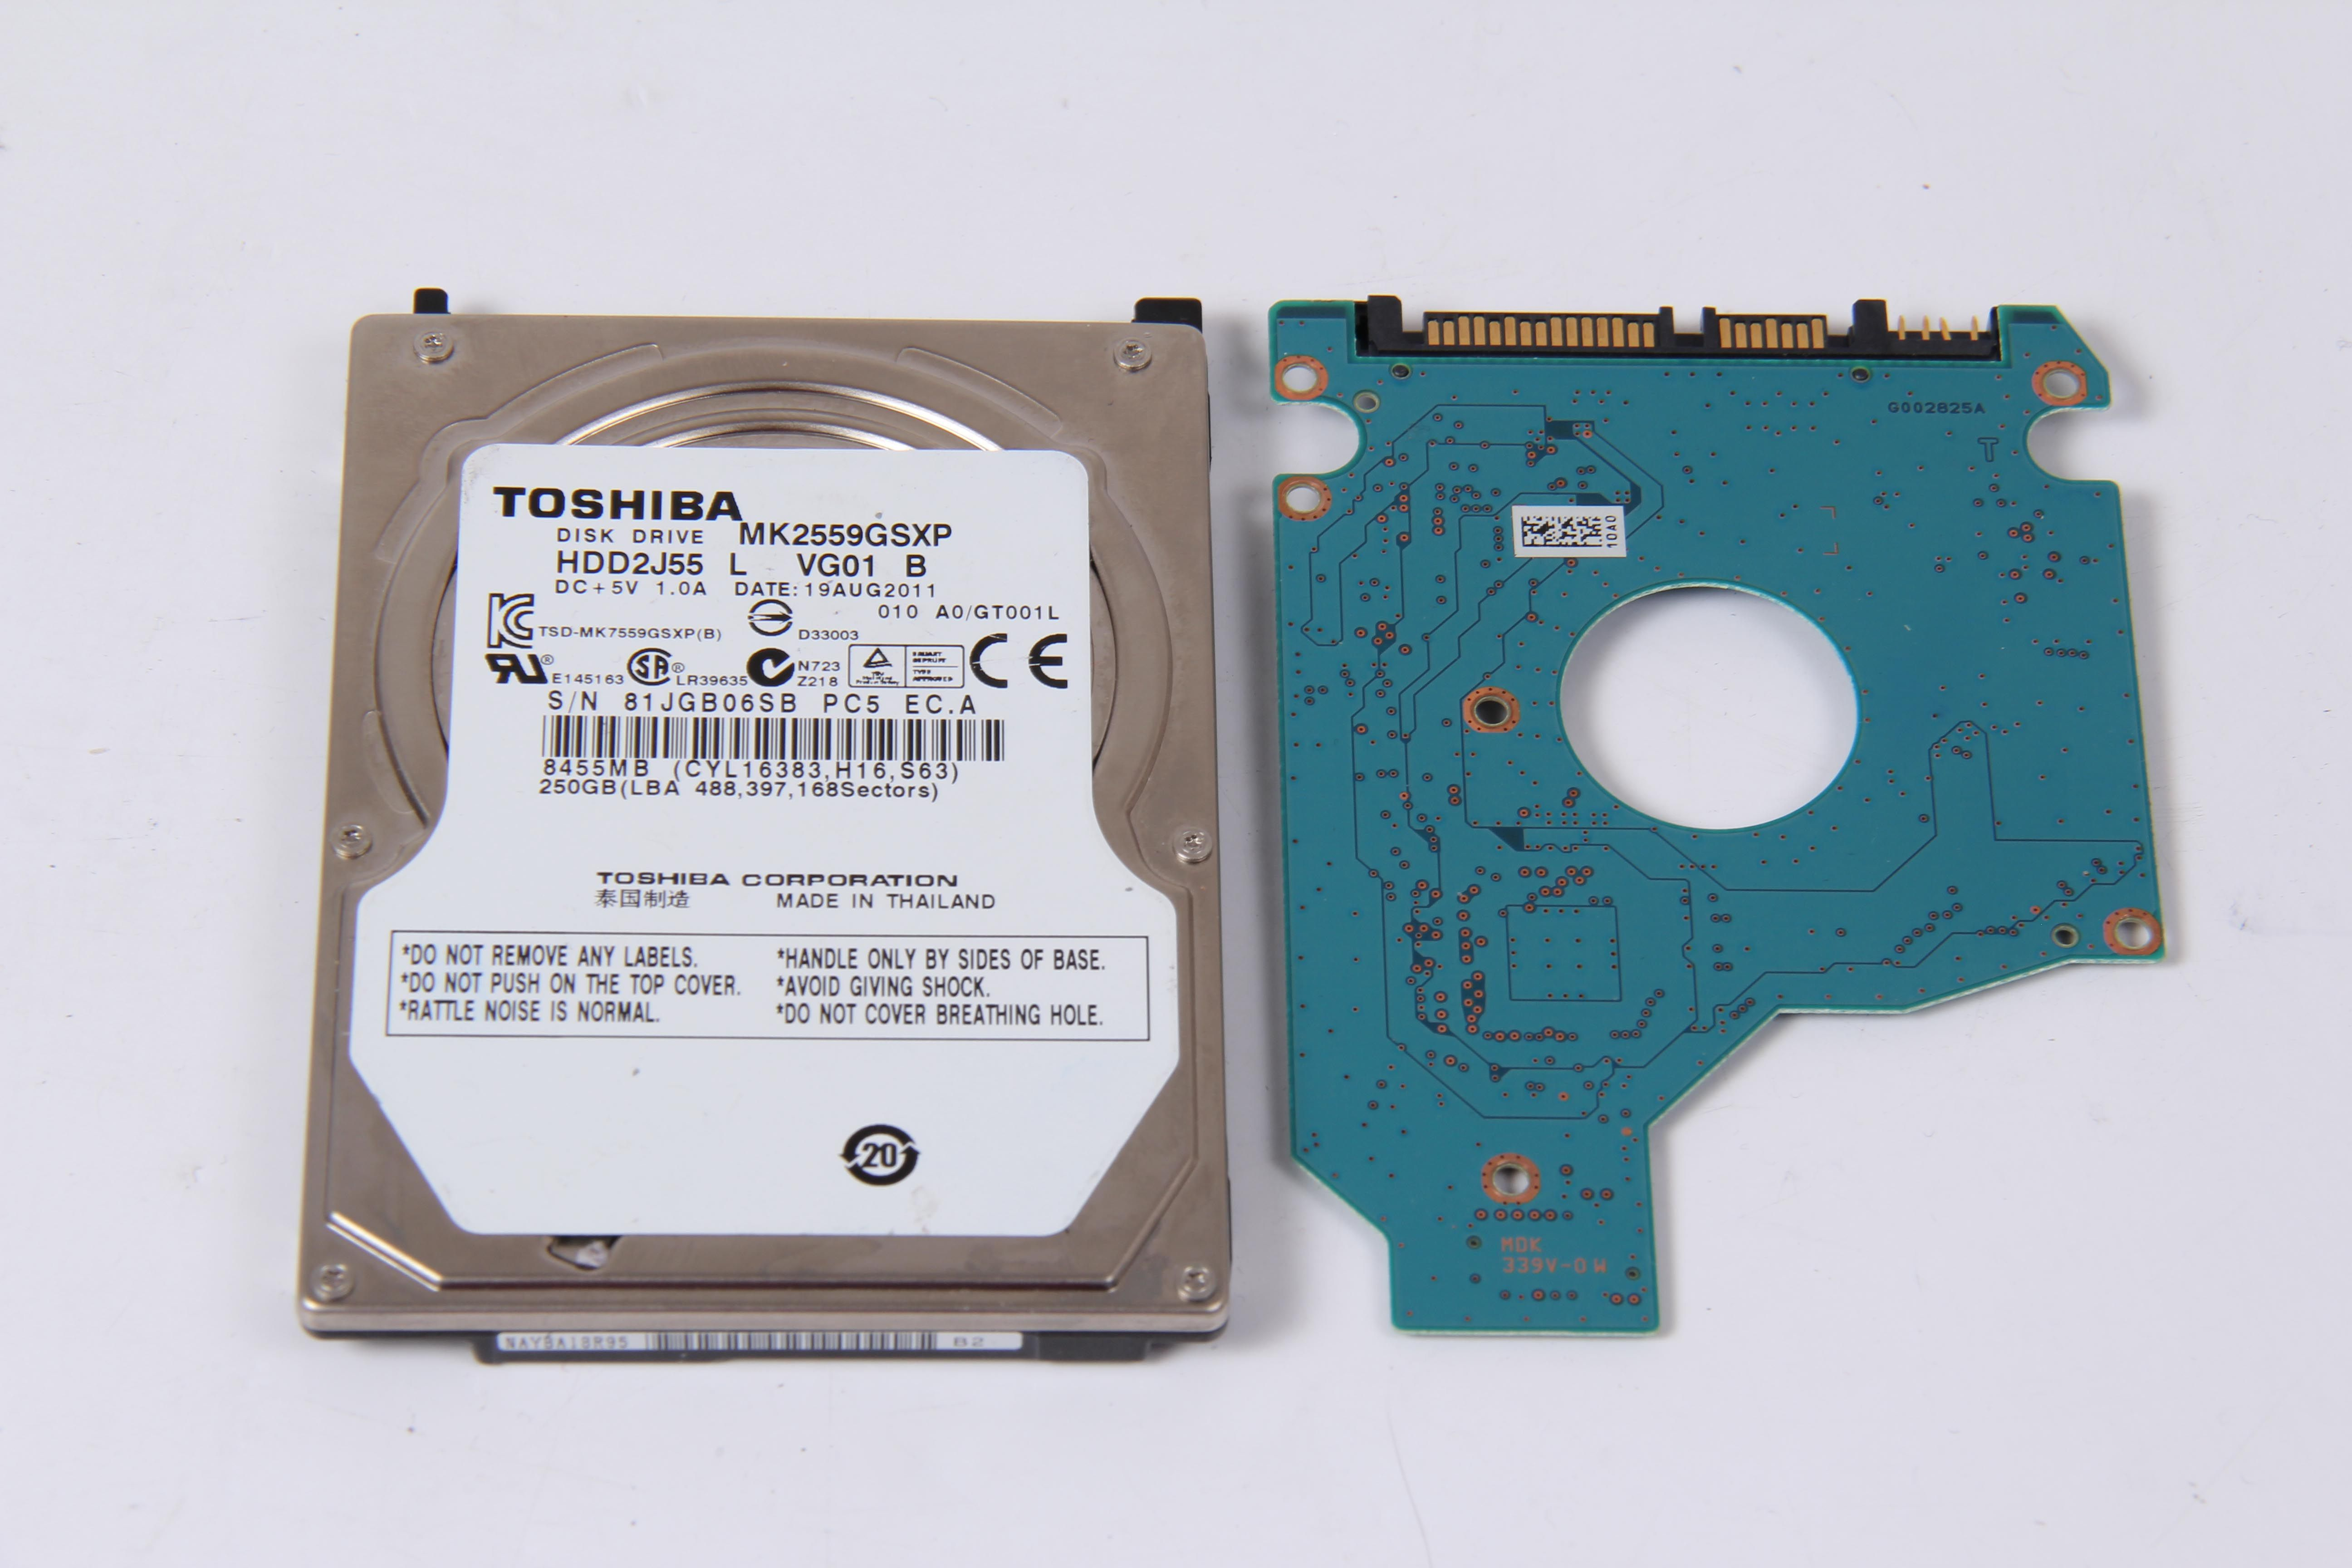 TOSHIBA MK2559GSXP 250GB SATA 2,5 HARD DRIVE / PCB (CIRCUIT BOARD) ONLY FOR DATA